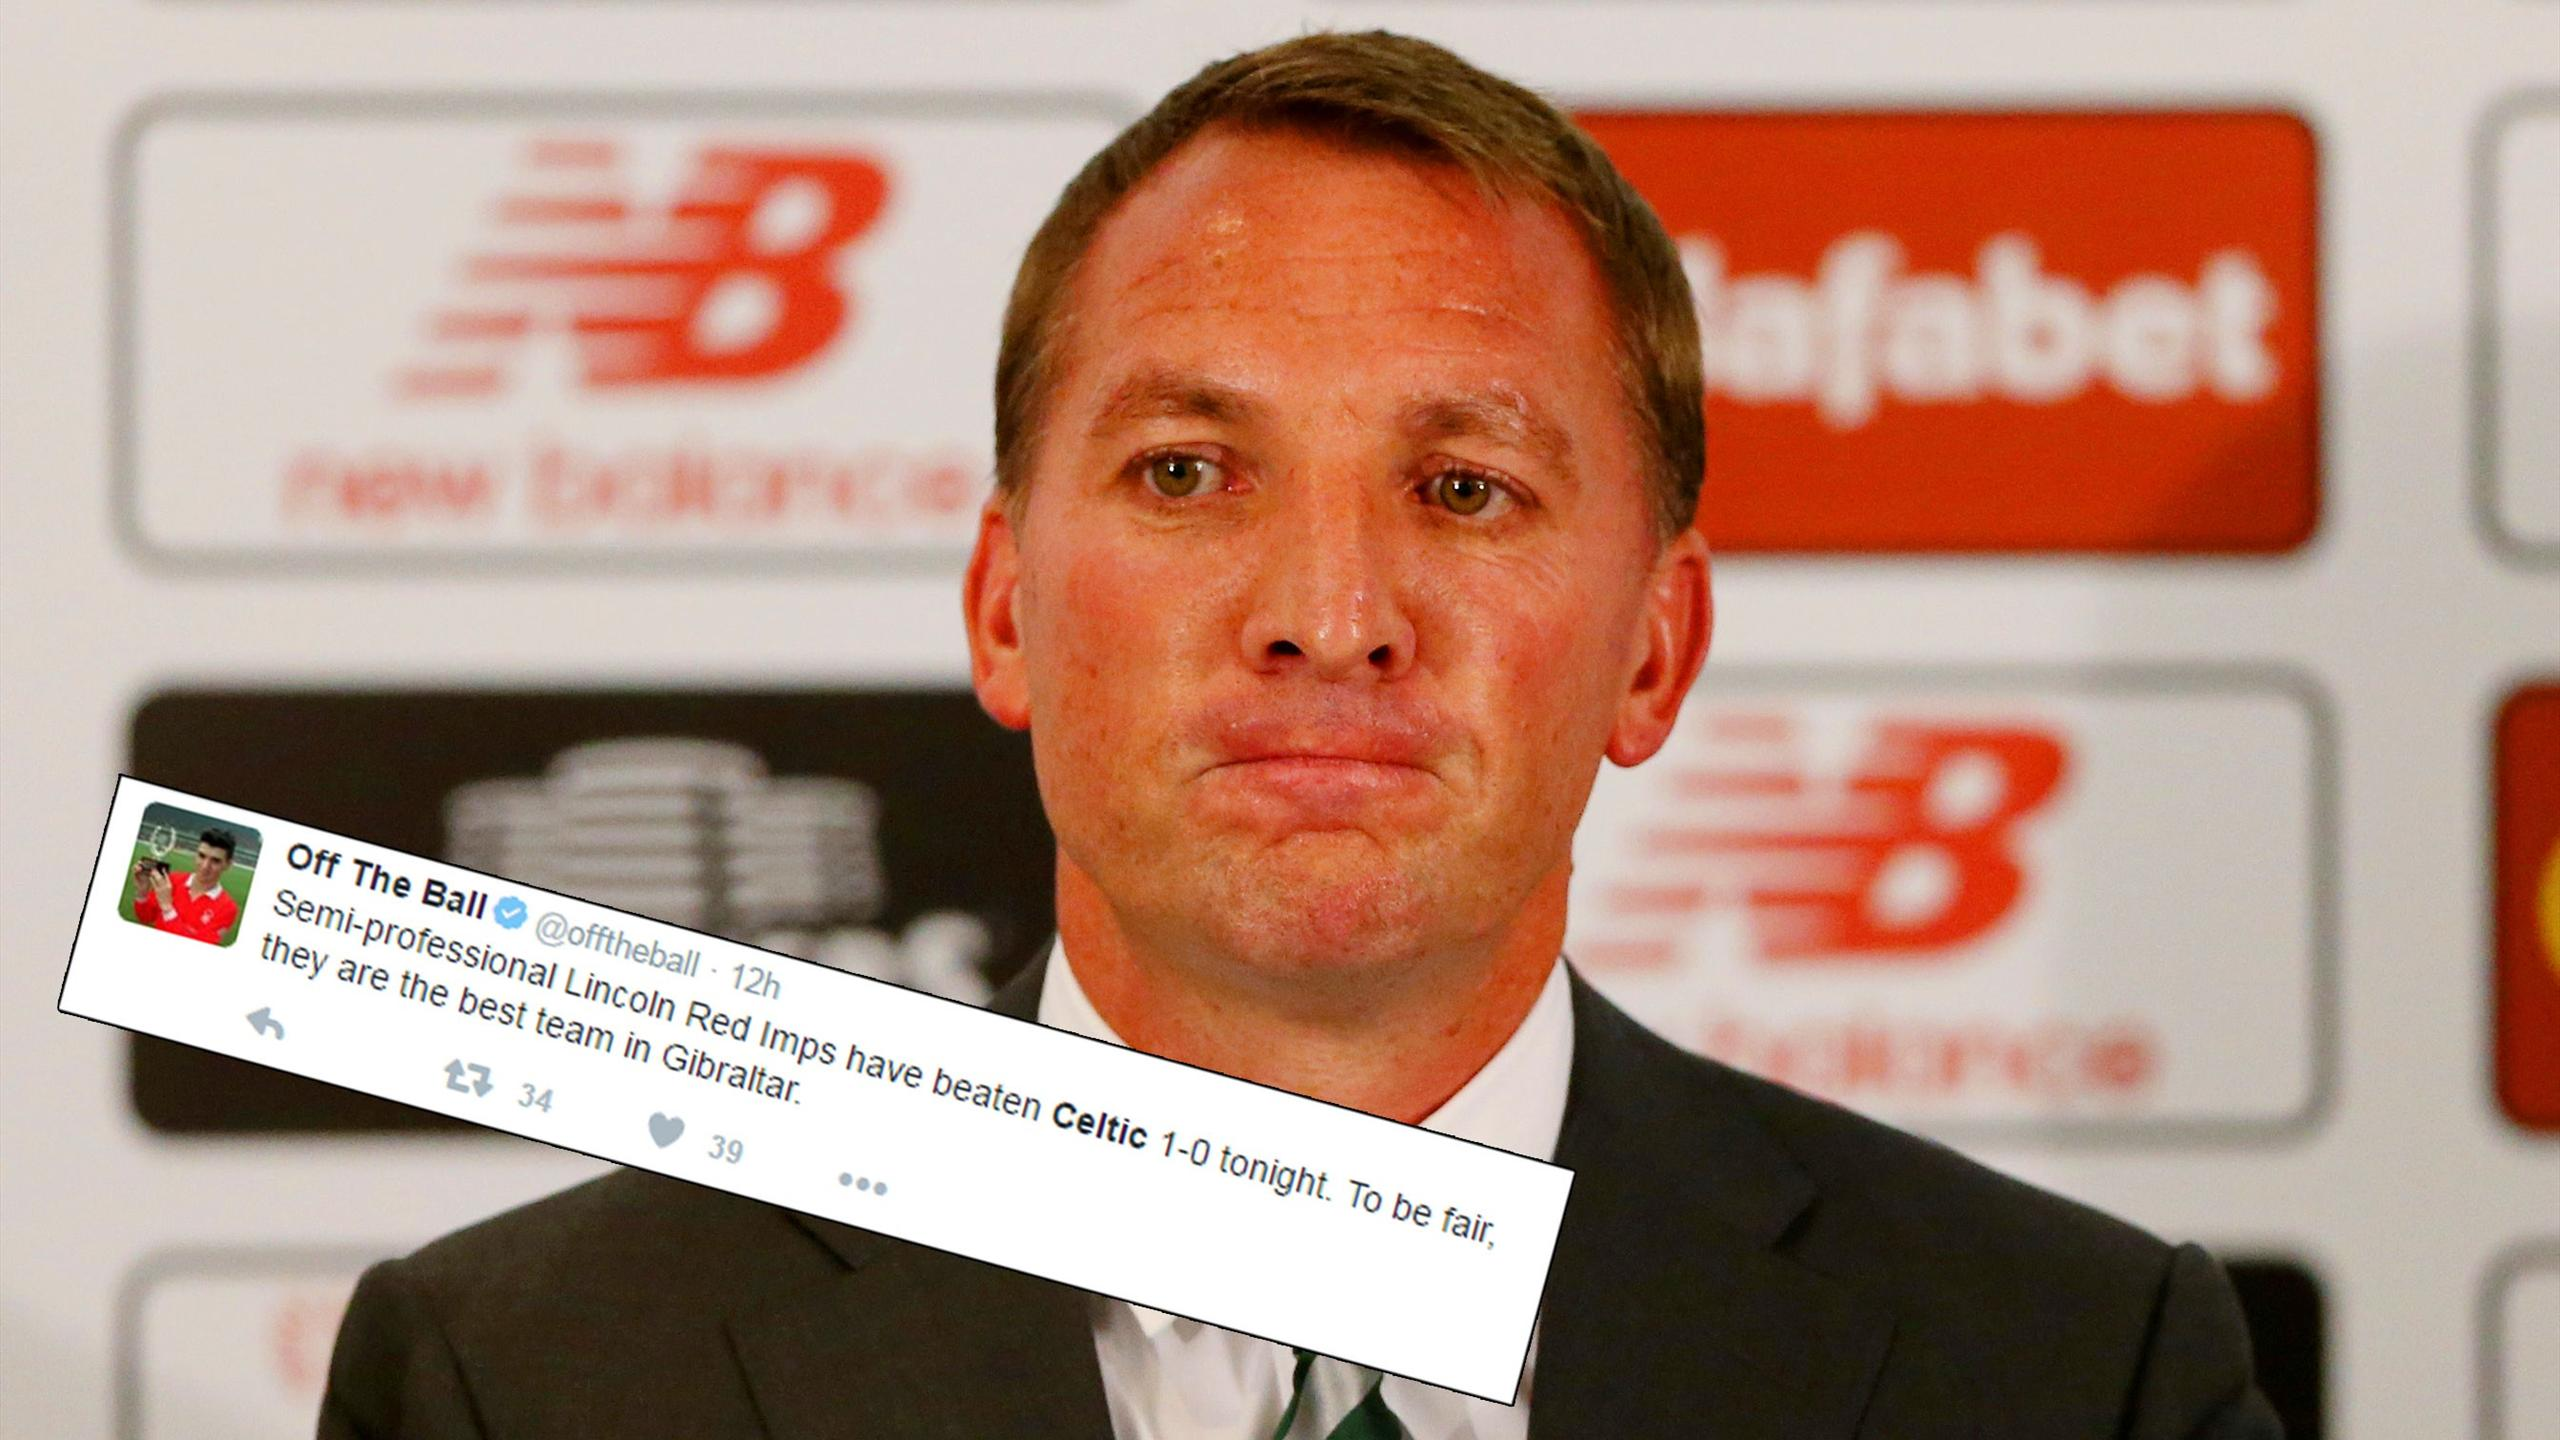 Celtic boss Brendan Rodgers and reaction to their defeat to the Red Imps of Gibraltar